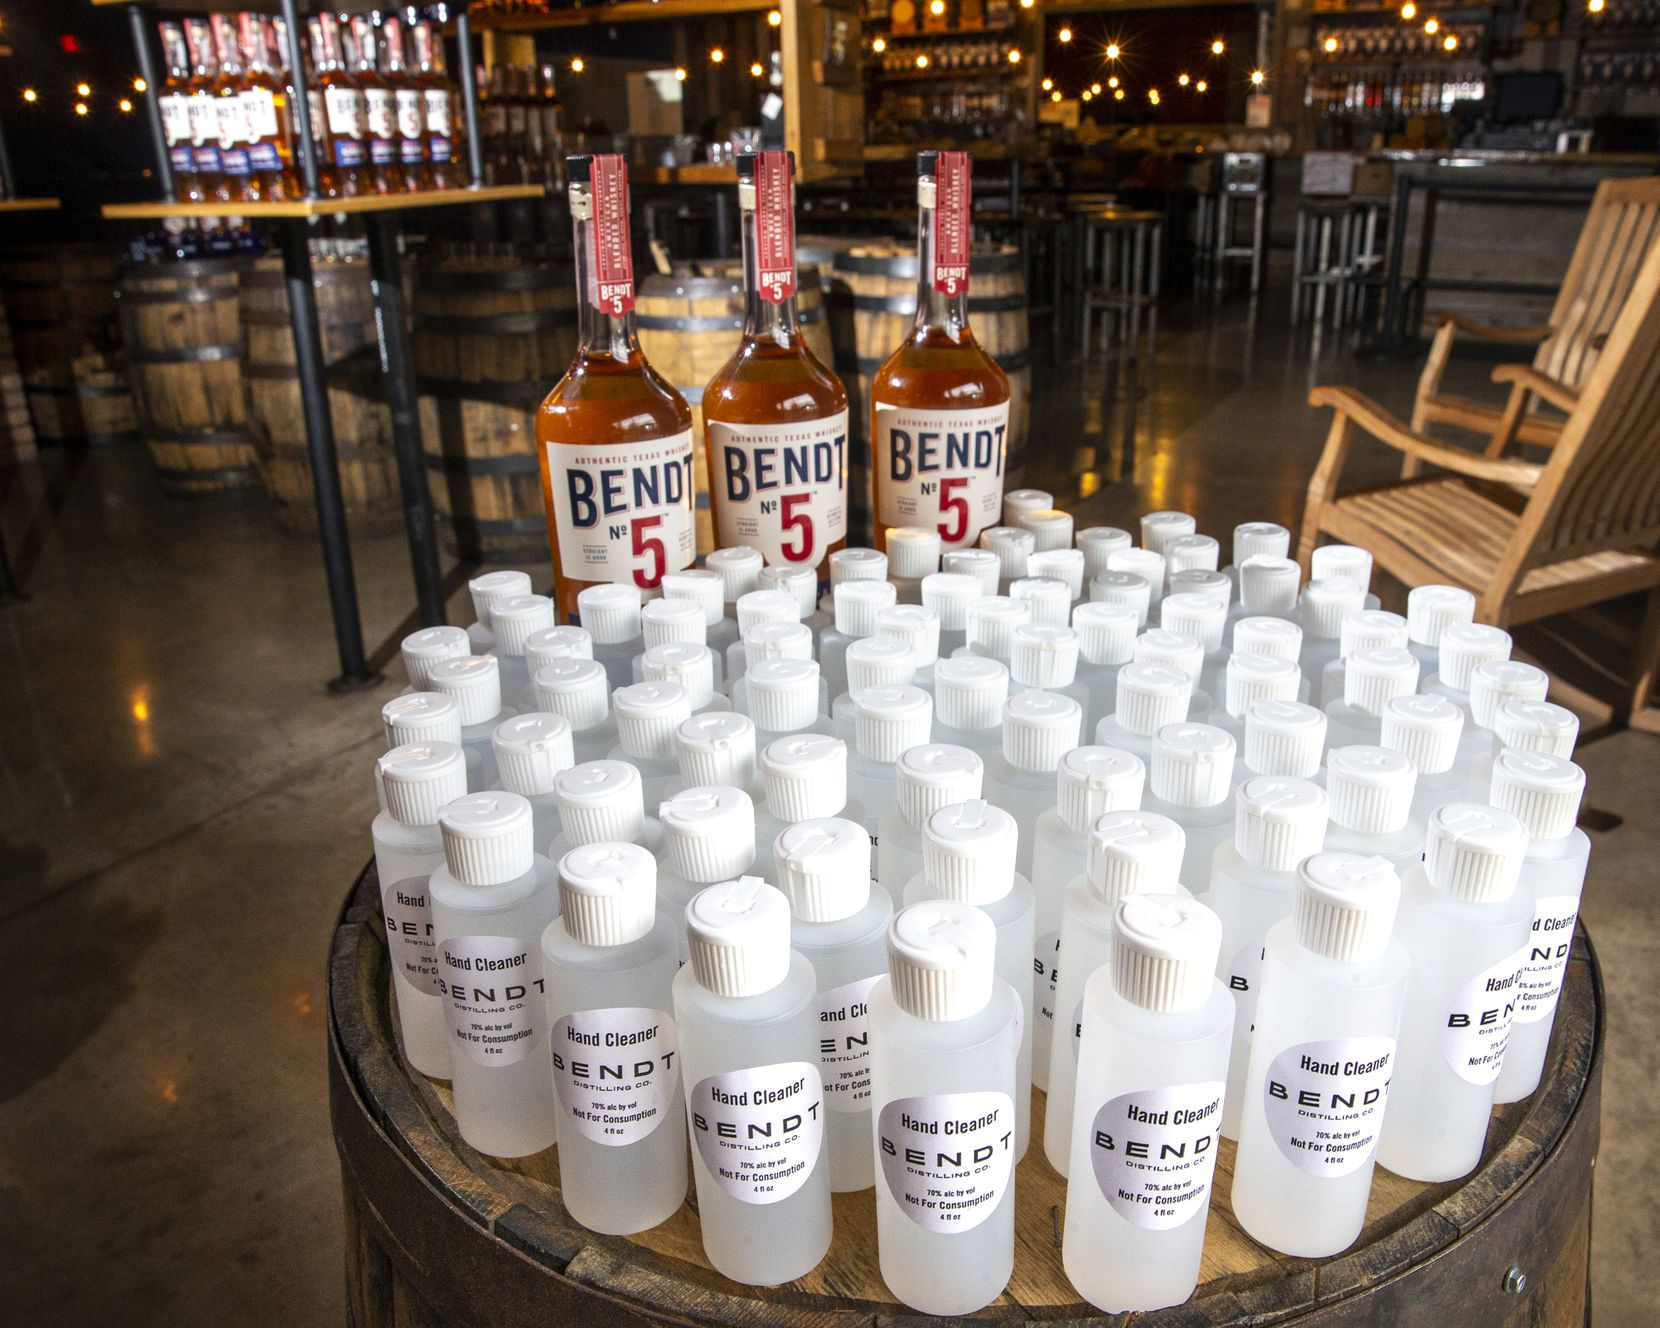 Bendt Distilling turned to hand sanitizer production once the COVID-19 outbreak took hold, ultimately donating tens of thousands of bottles to Dallas County front-line workers.